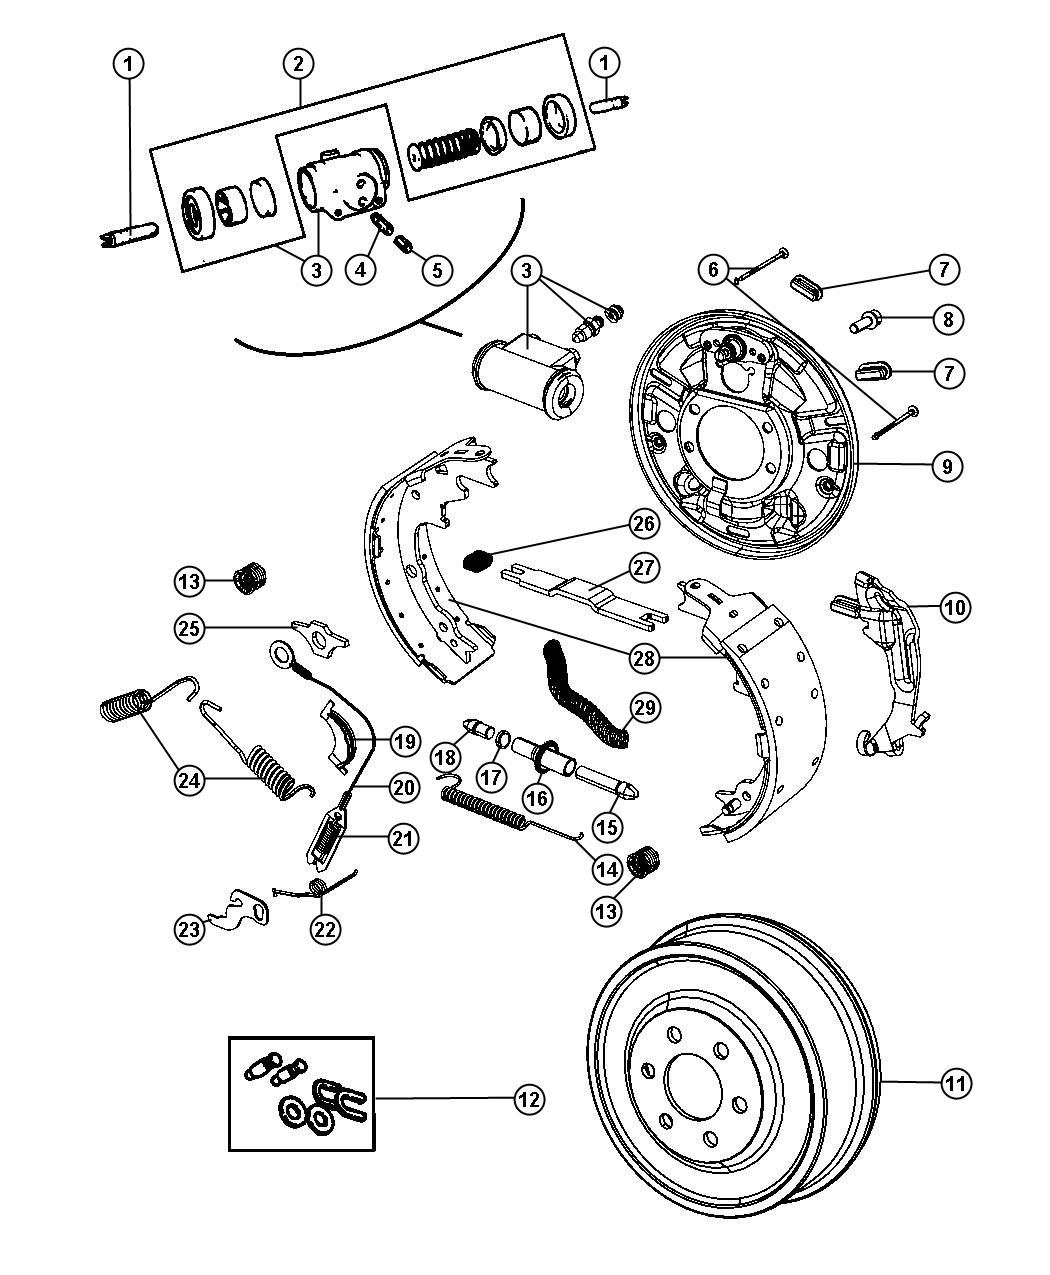 4 3 Distributor Cap Problems as well Suzuki 1 6l Engine Parts Diagram additionally 5 0 Mustang Gas Tank Diagram further Ford F250 Body Control Module Location furthermore Chrysler 8 25 Axle Diagram. on 1994 ford f 150 f150 xlt 50 302cid surging bucking